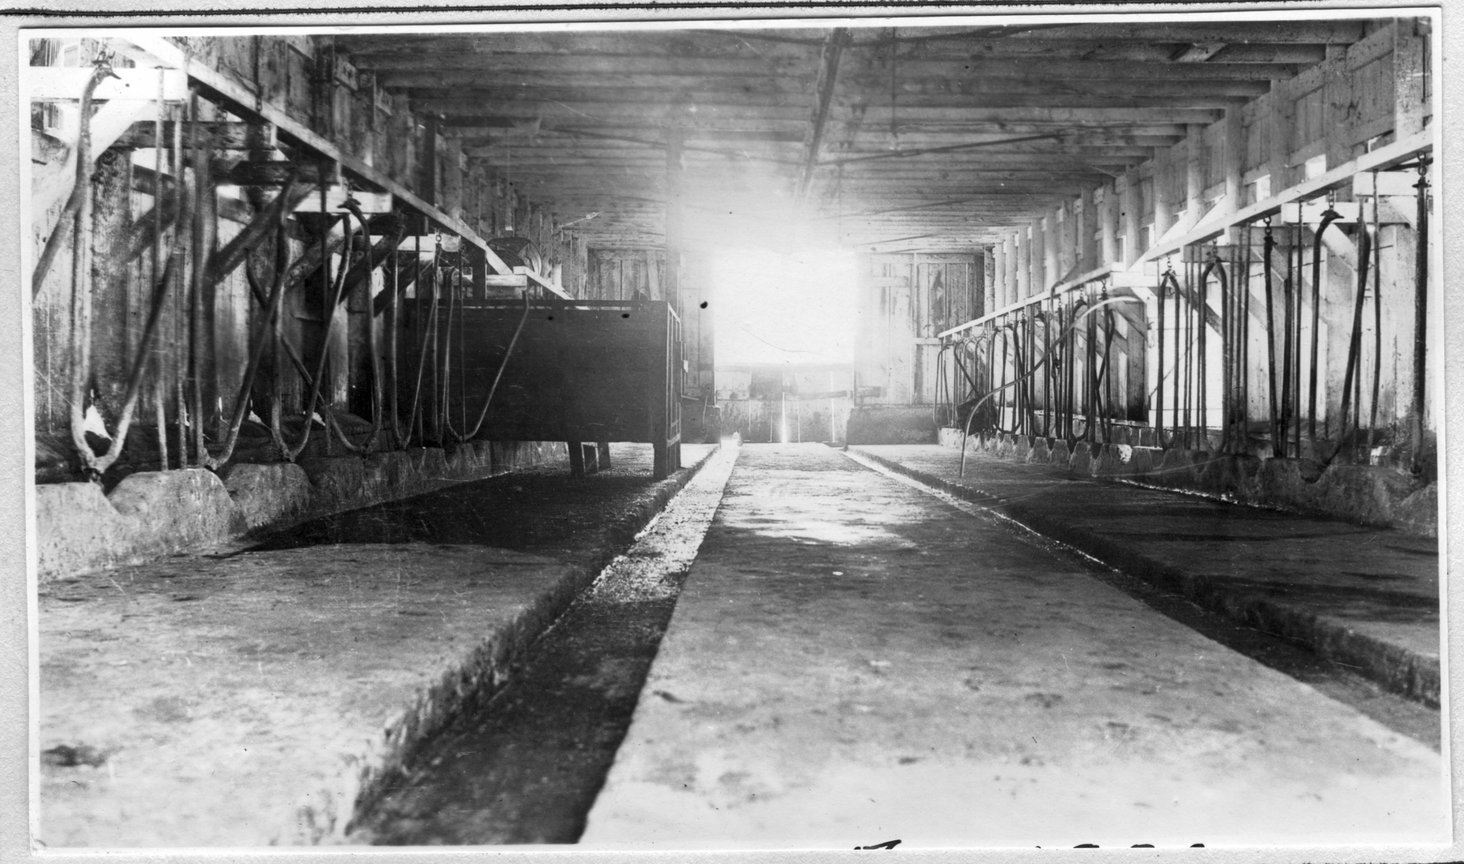 115~Mrs. A. R. Phelan Barn Interior Aug 1920.jpg